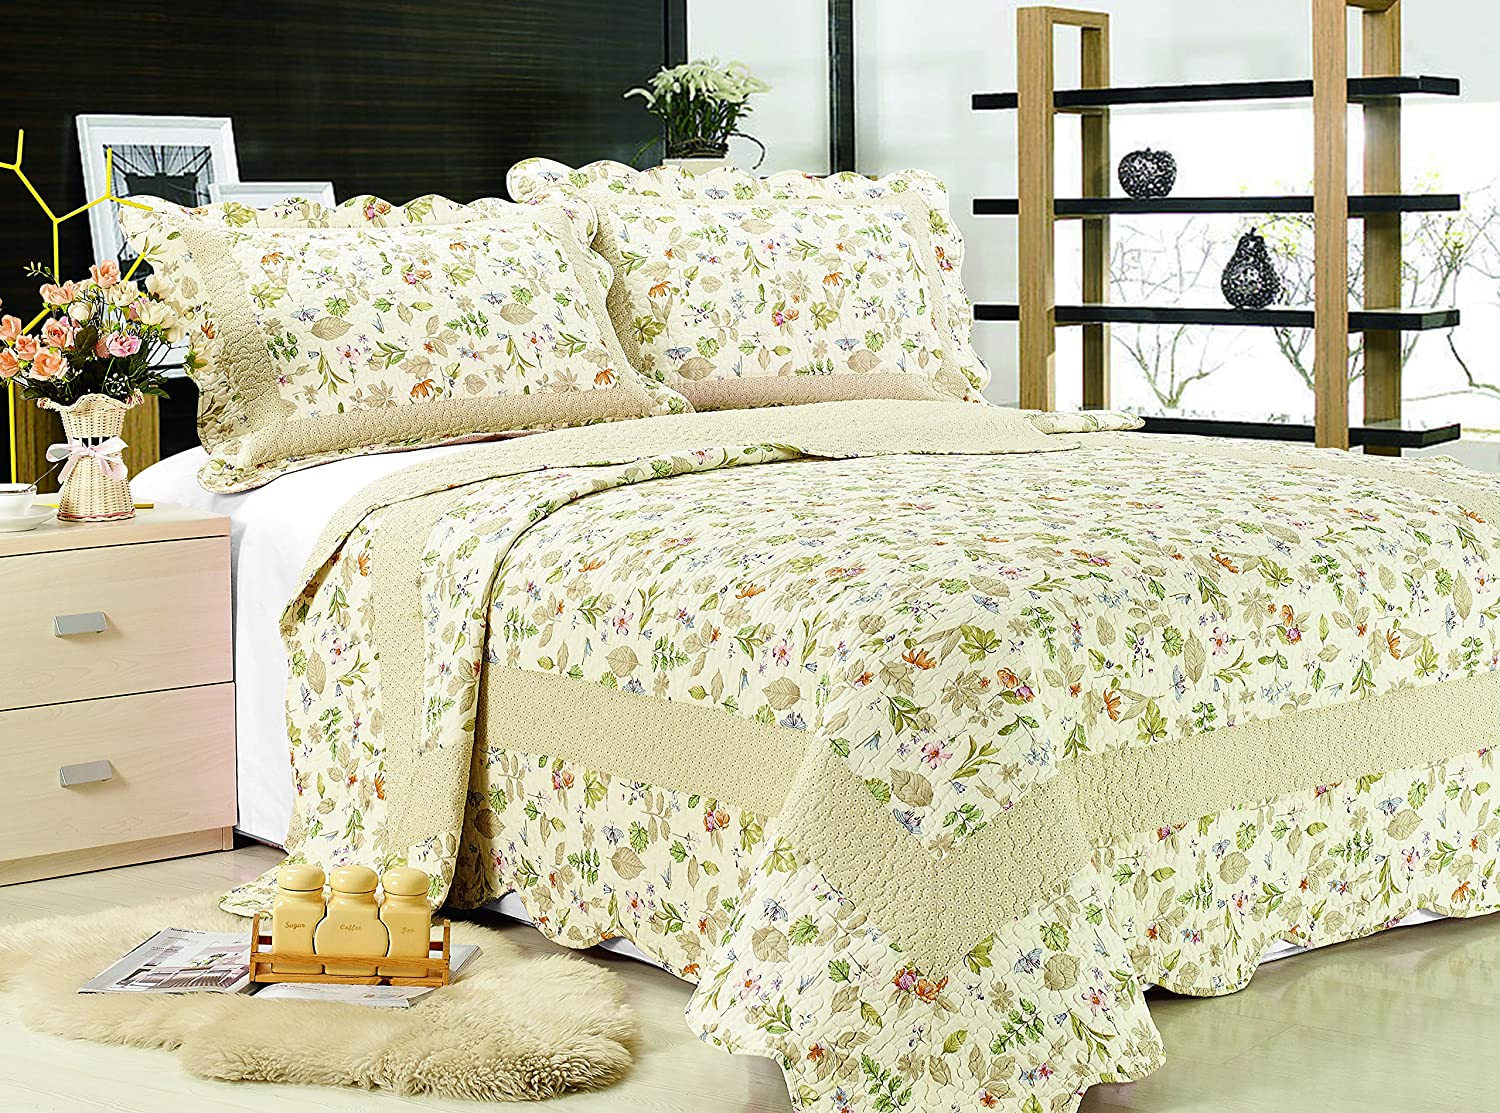 3-piece Reversible Bedspread/ Coverlet / Quilt Set-orange, pink, purple, blue flowers and sage green